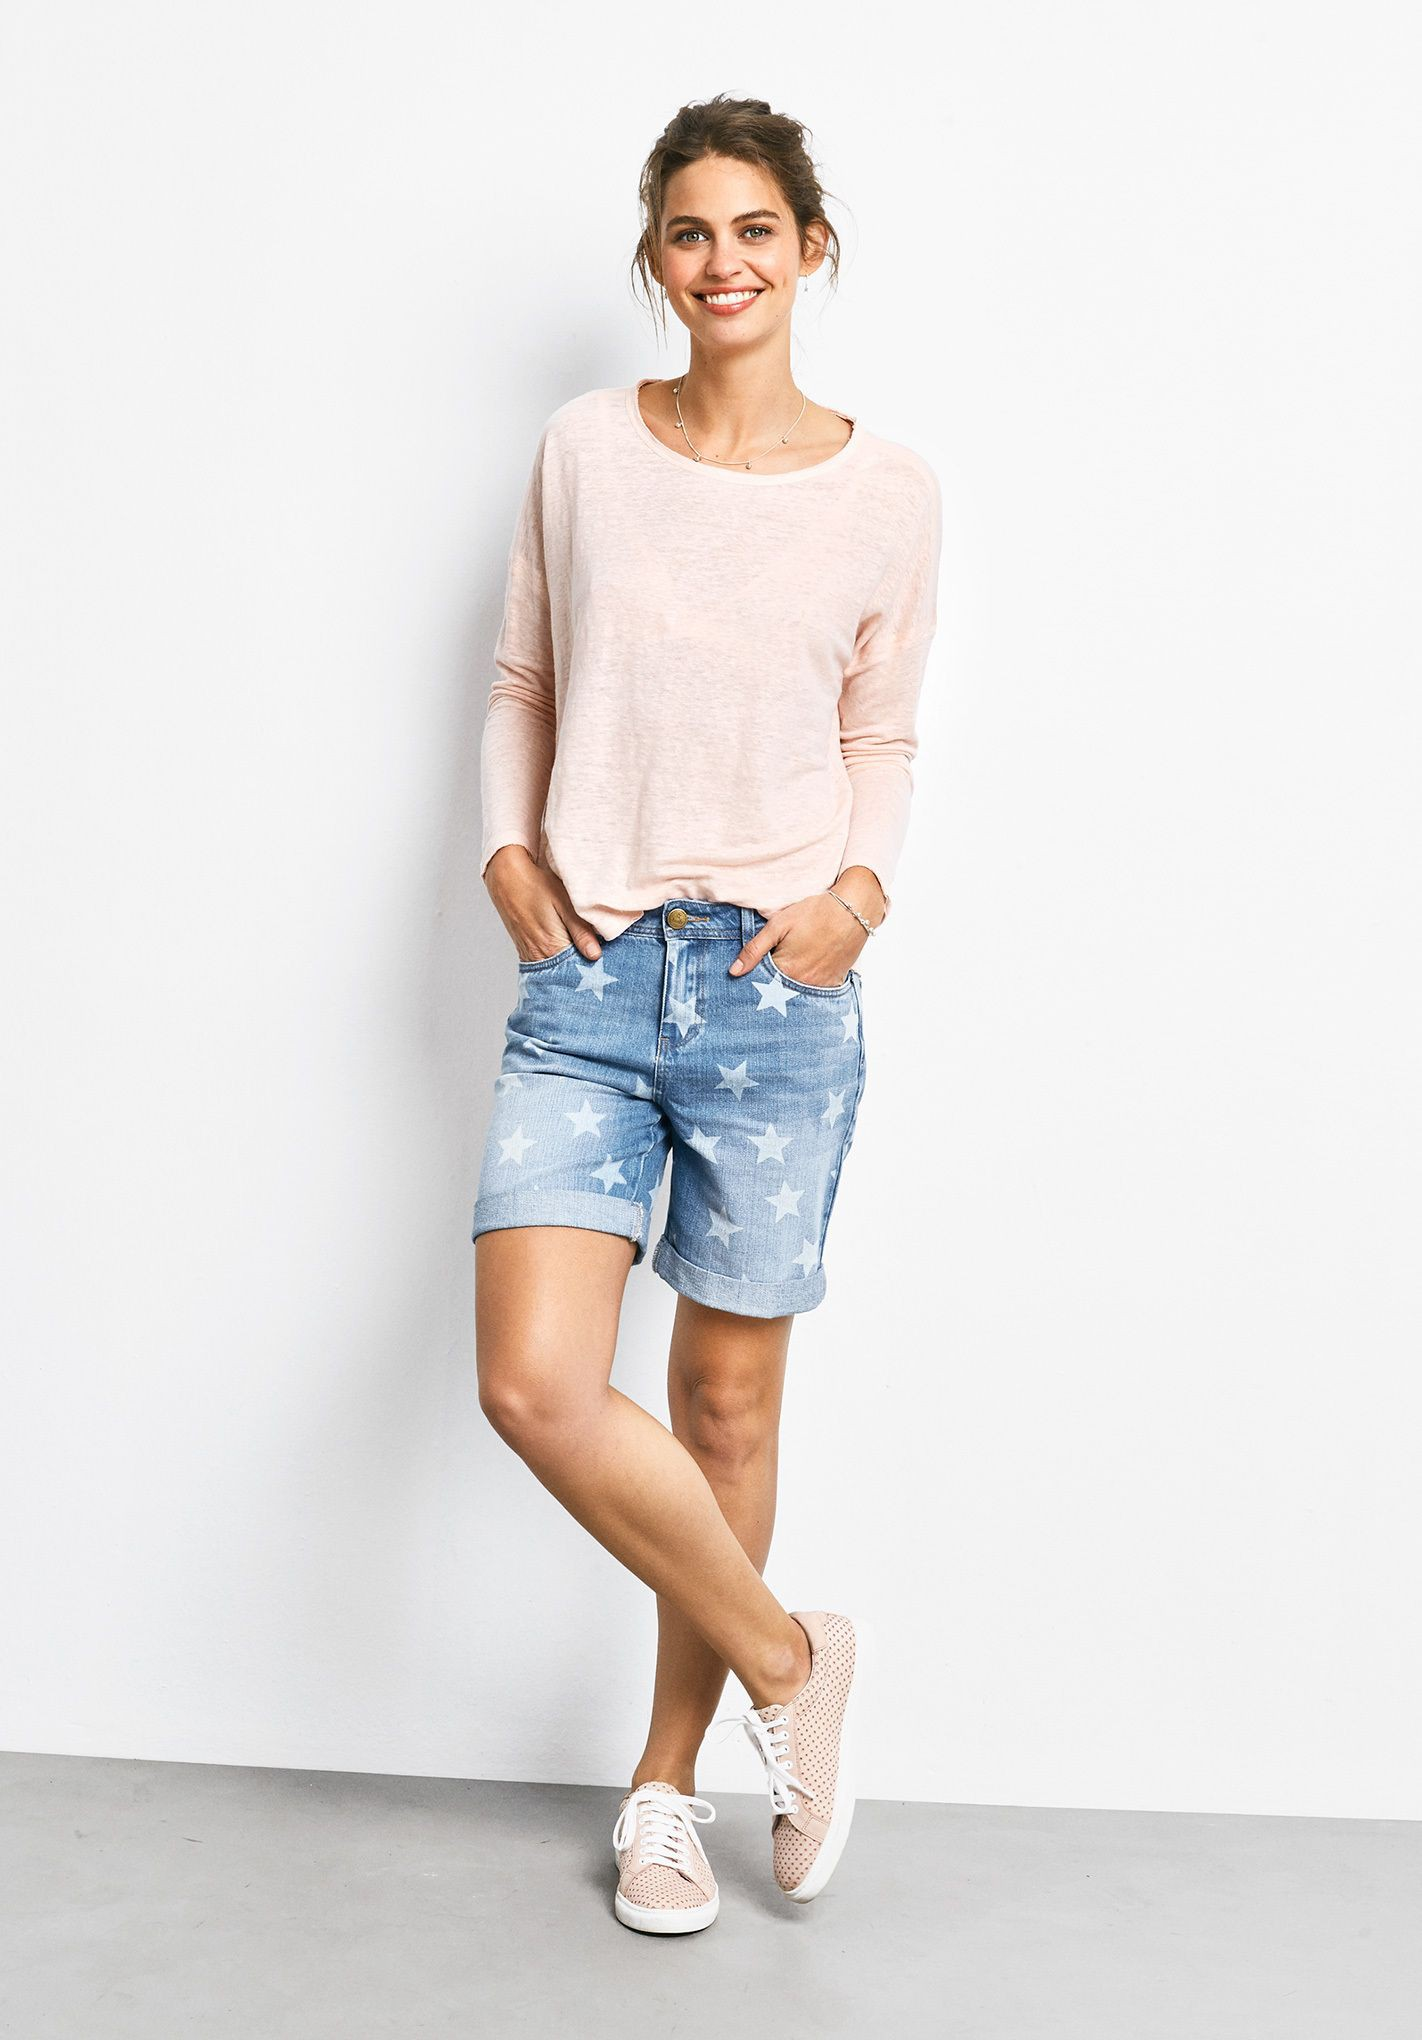 White fashion collection with bermuda shorts, trousers, shorts